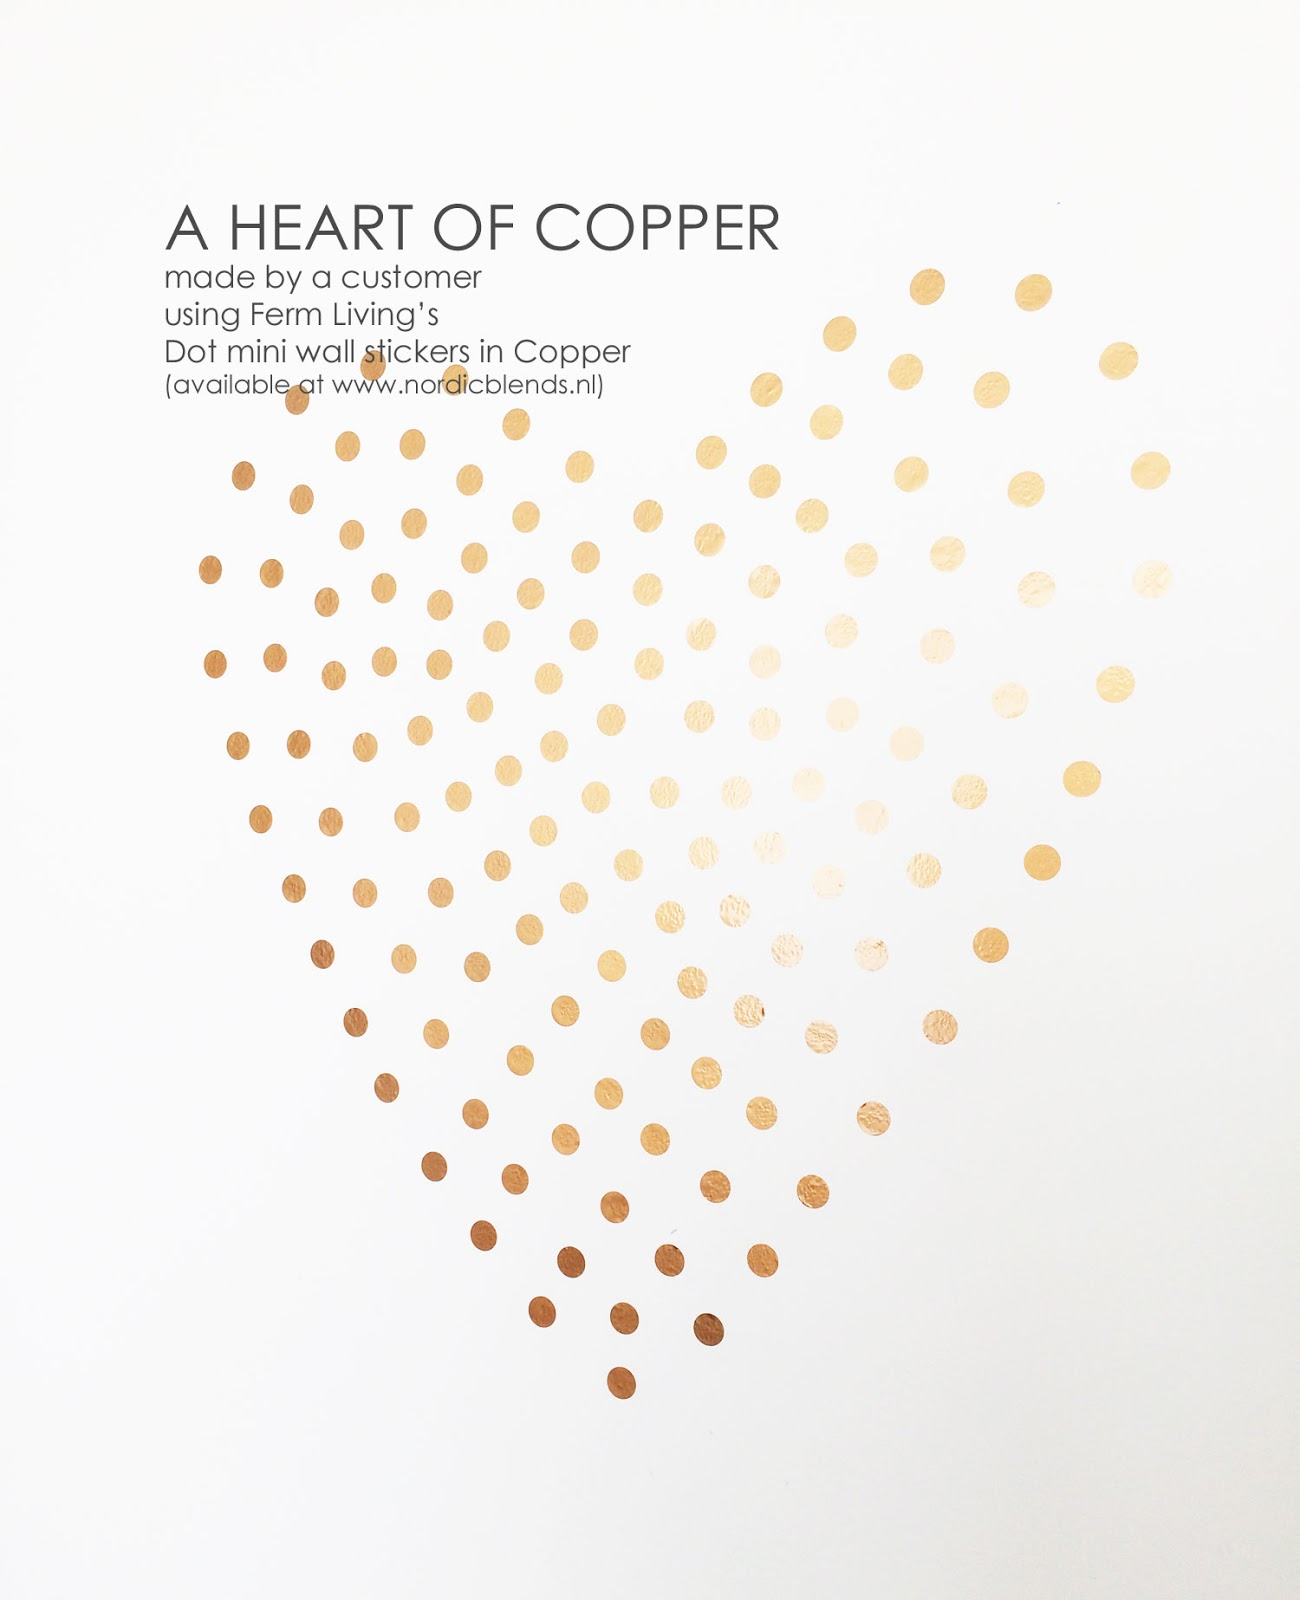 Muurstickers Ferm Living Nordic Blends A Customer 39s Home A Heart Of Copper